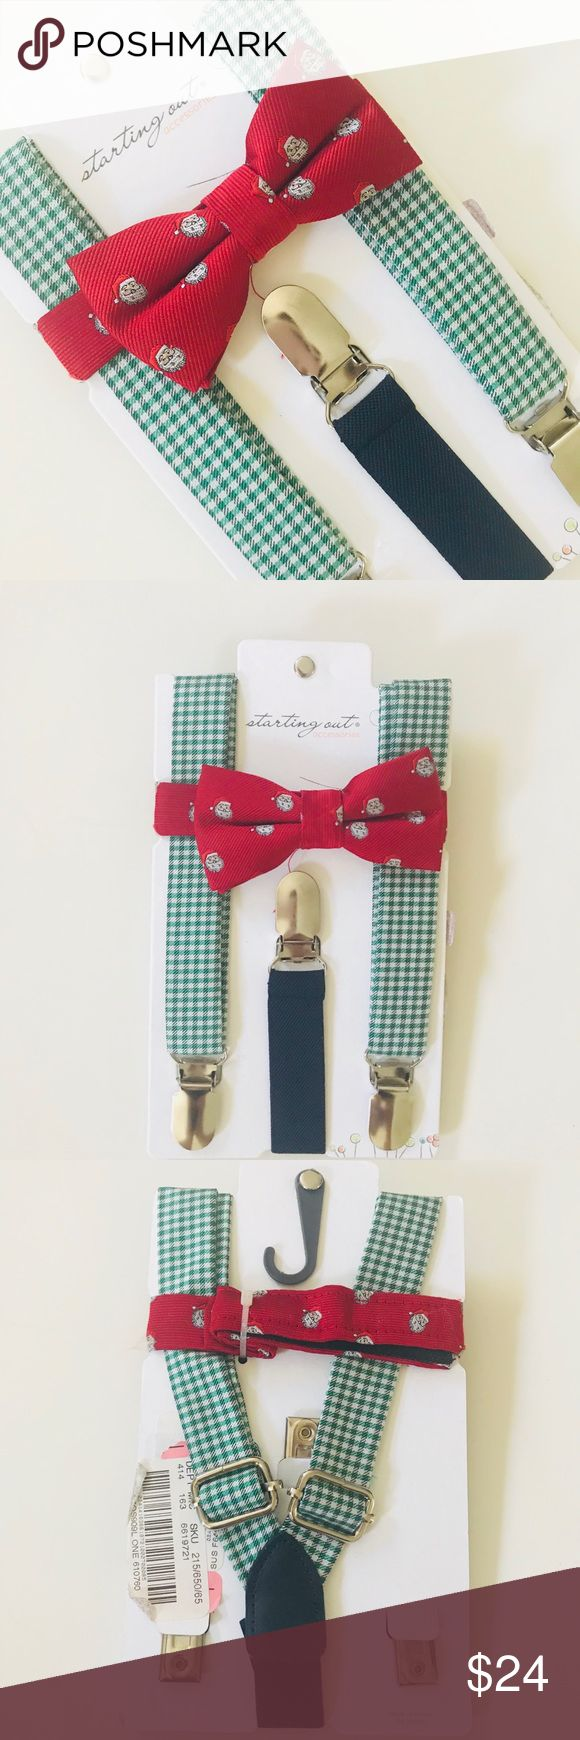 Baby Boy Santa Bow Tie Suspender Set Brand new with tags Baby Boy Santa Print Bow Tie and  Gingham Suspenders Set for your little man's First Christmas Photos , holiday dress-up events throughout the season!  From boutique brand, Starting Out.    Set is well made, includes:  🍃 bow tie with velcro neck strap to adjust 🍃 suspenders with adjustable straps 🍃 polyester 🍃 spot clean  I have 2 other sets listed with different bow tie prints in my baby closet,  if interested be sure to take a…